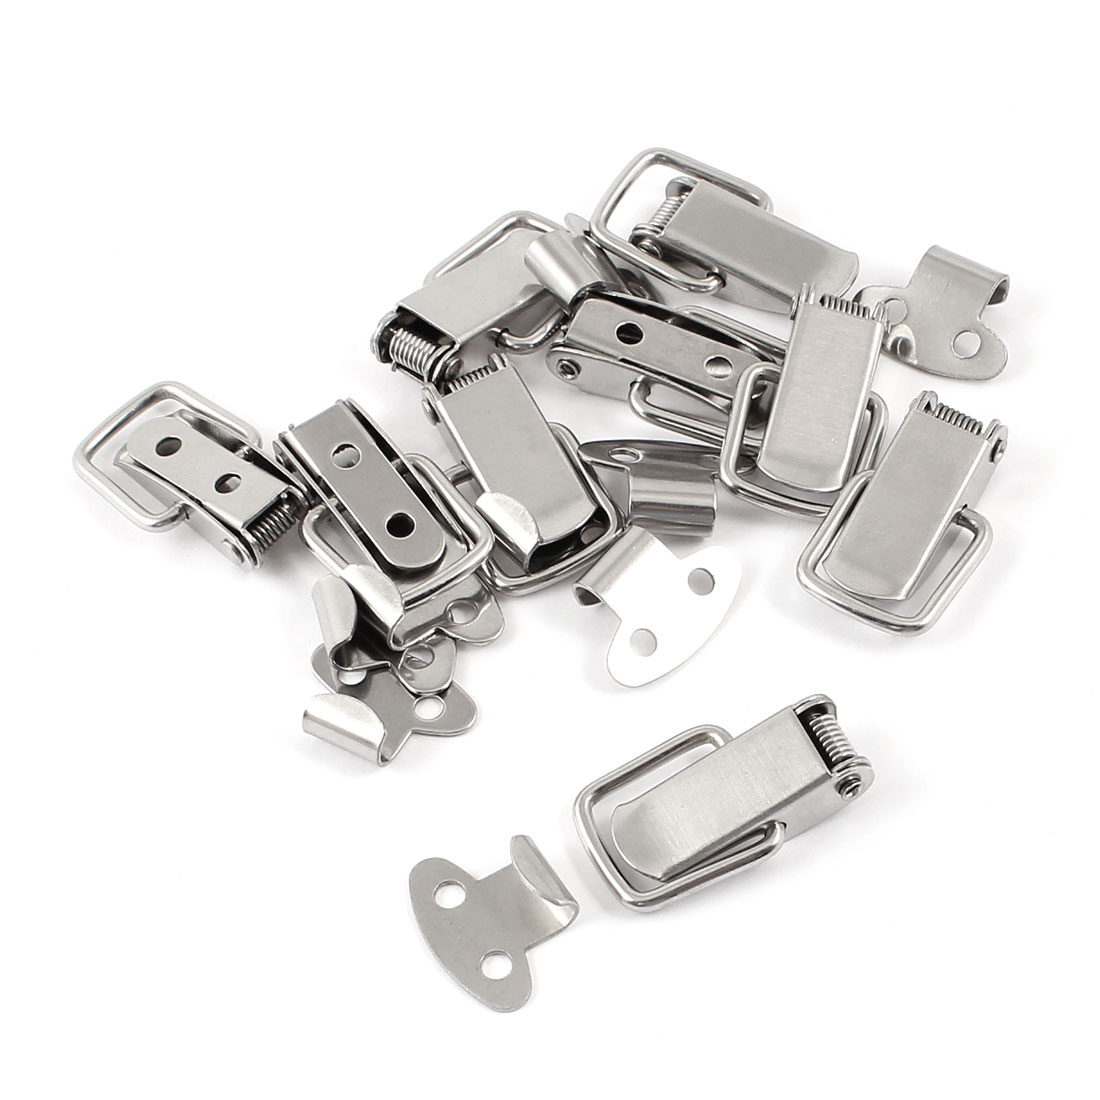 9 Set Hardware Silver Tone Spring Loaded Cases Closet Toggle Latch Hasp